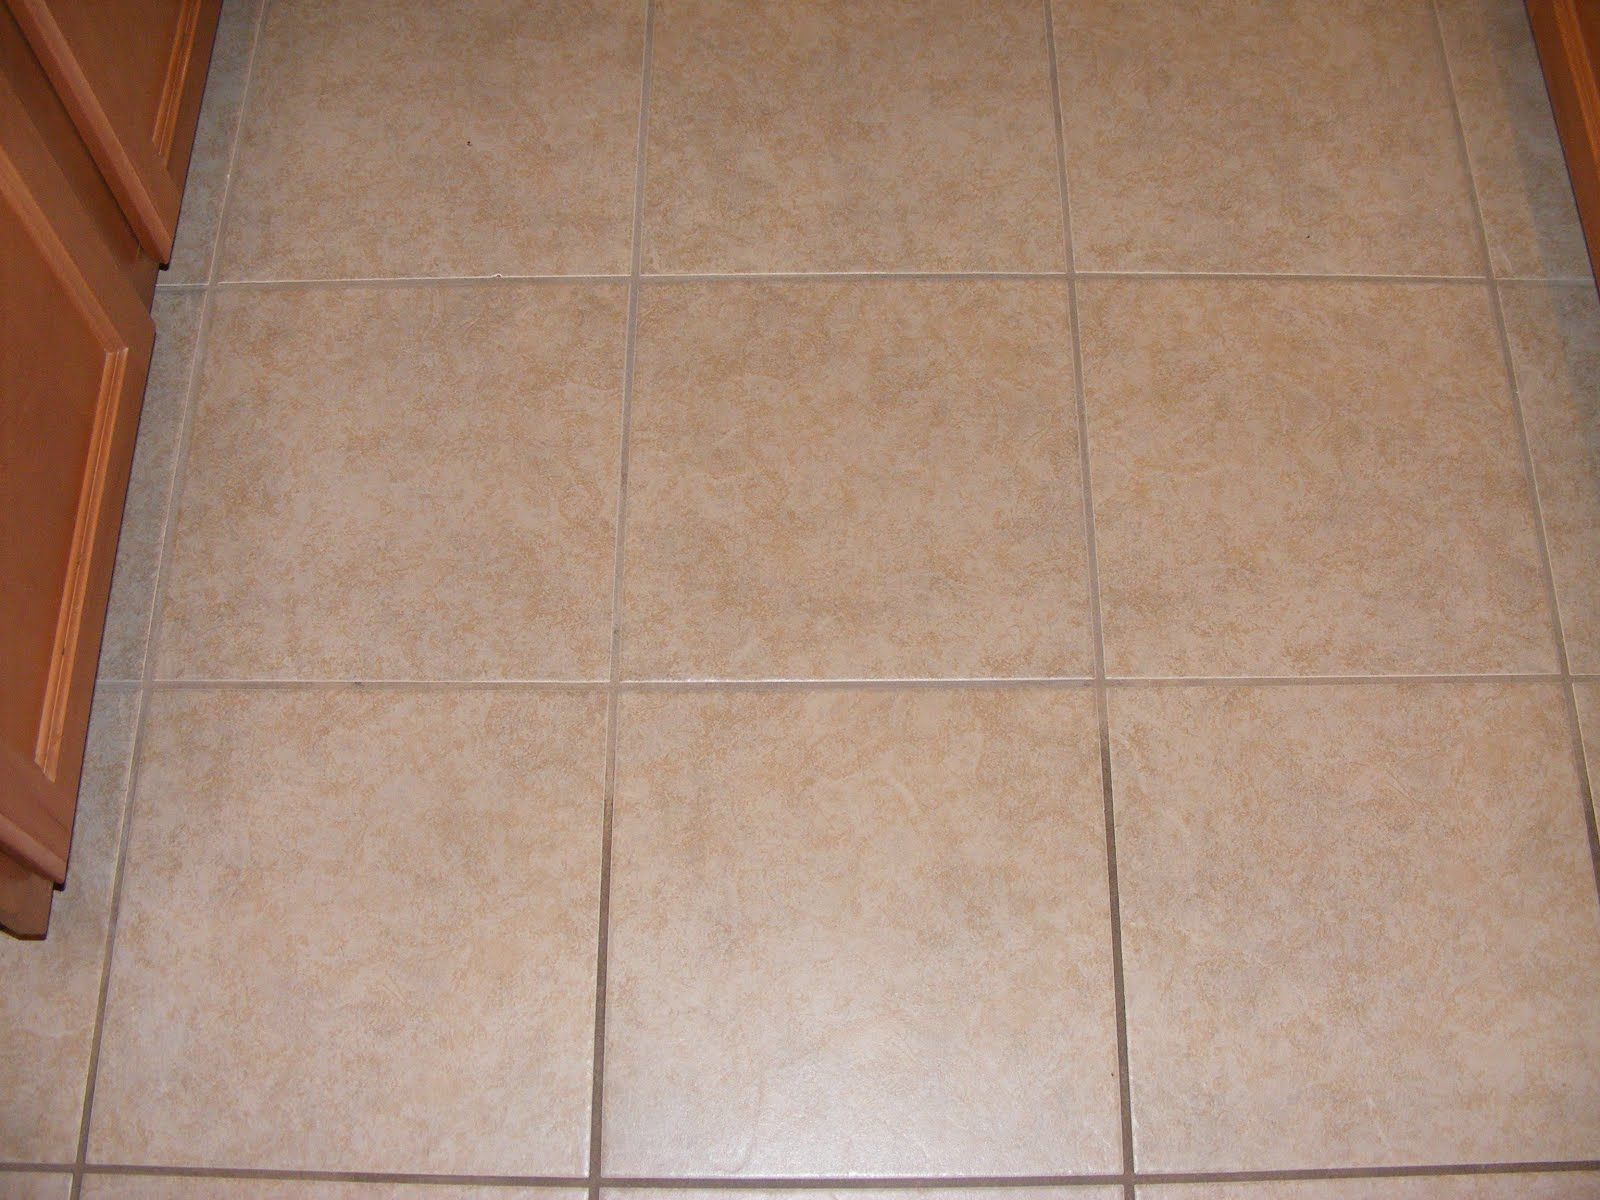 how long for grout to dry before sealing